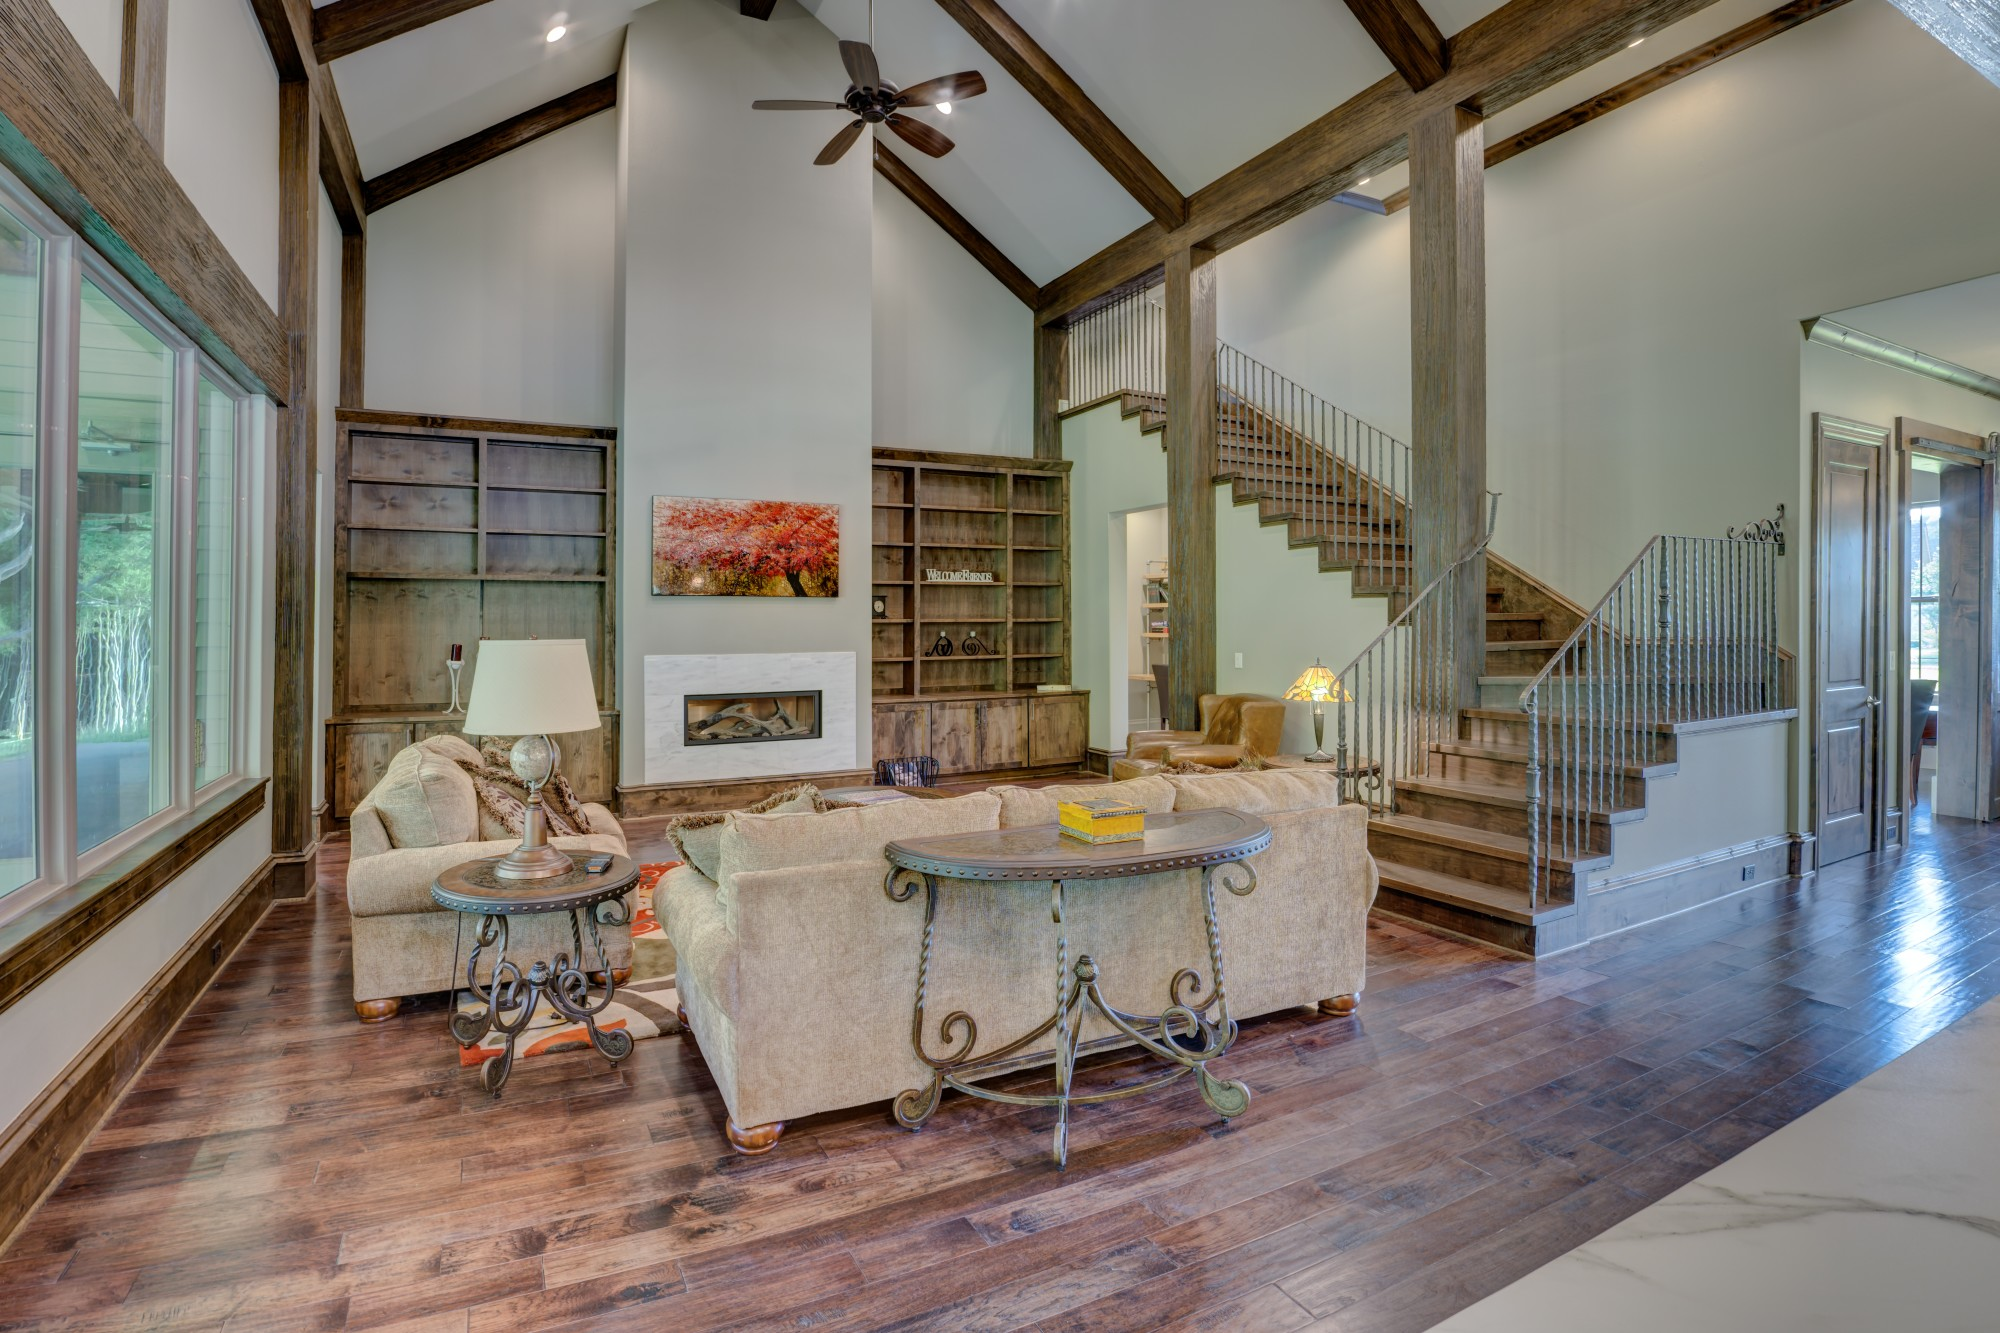 Home Design Ideas: 8 Advantages of a Vaulted Ceiling